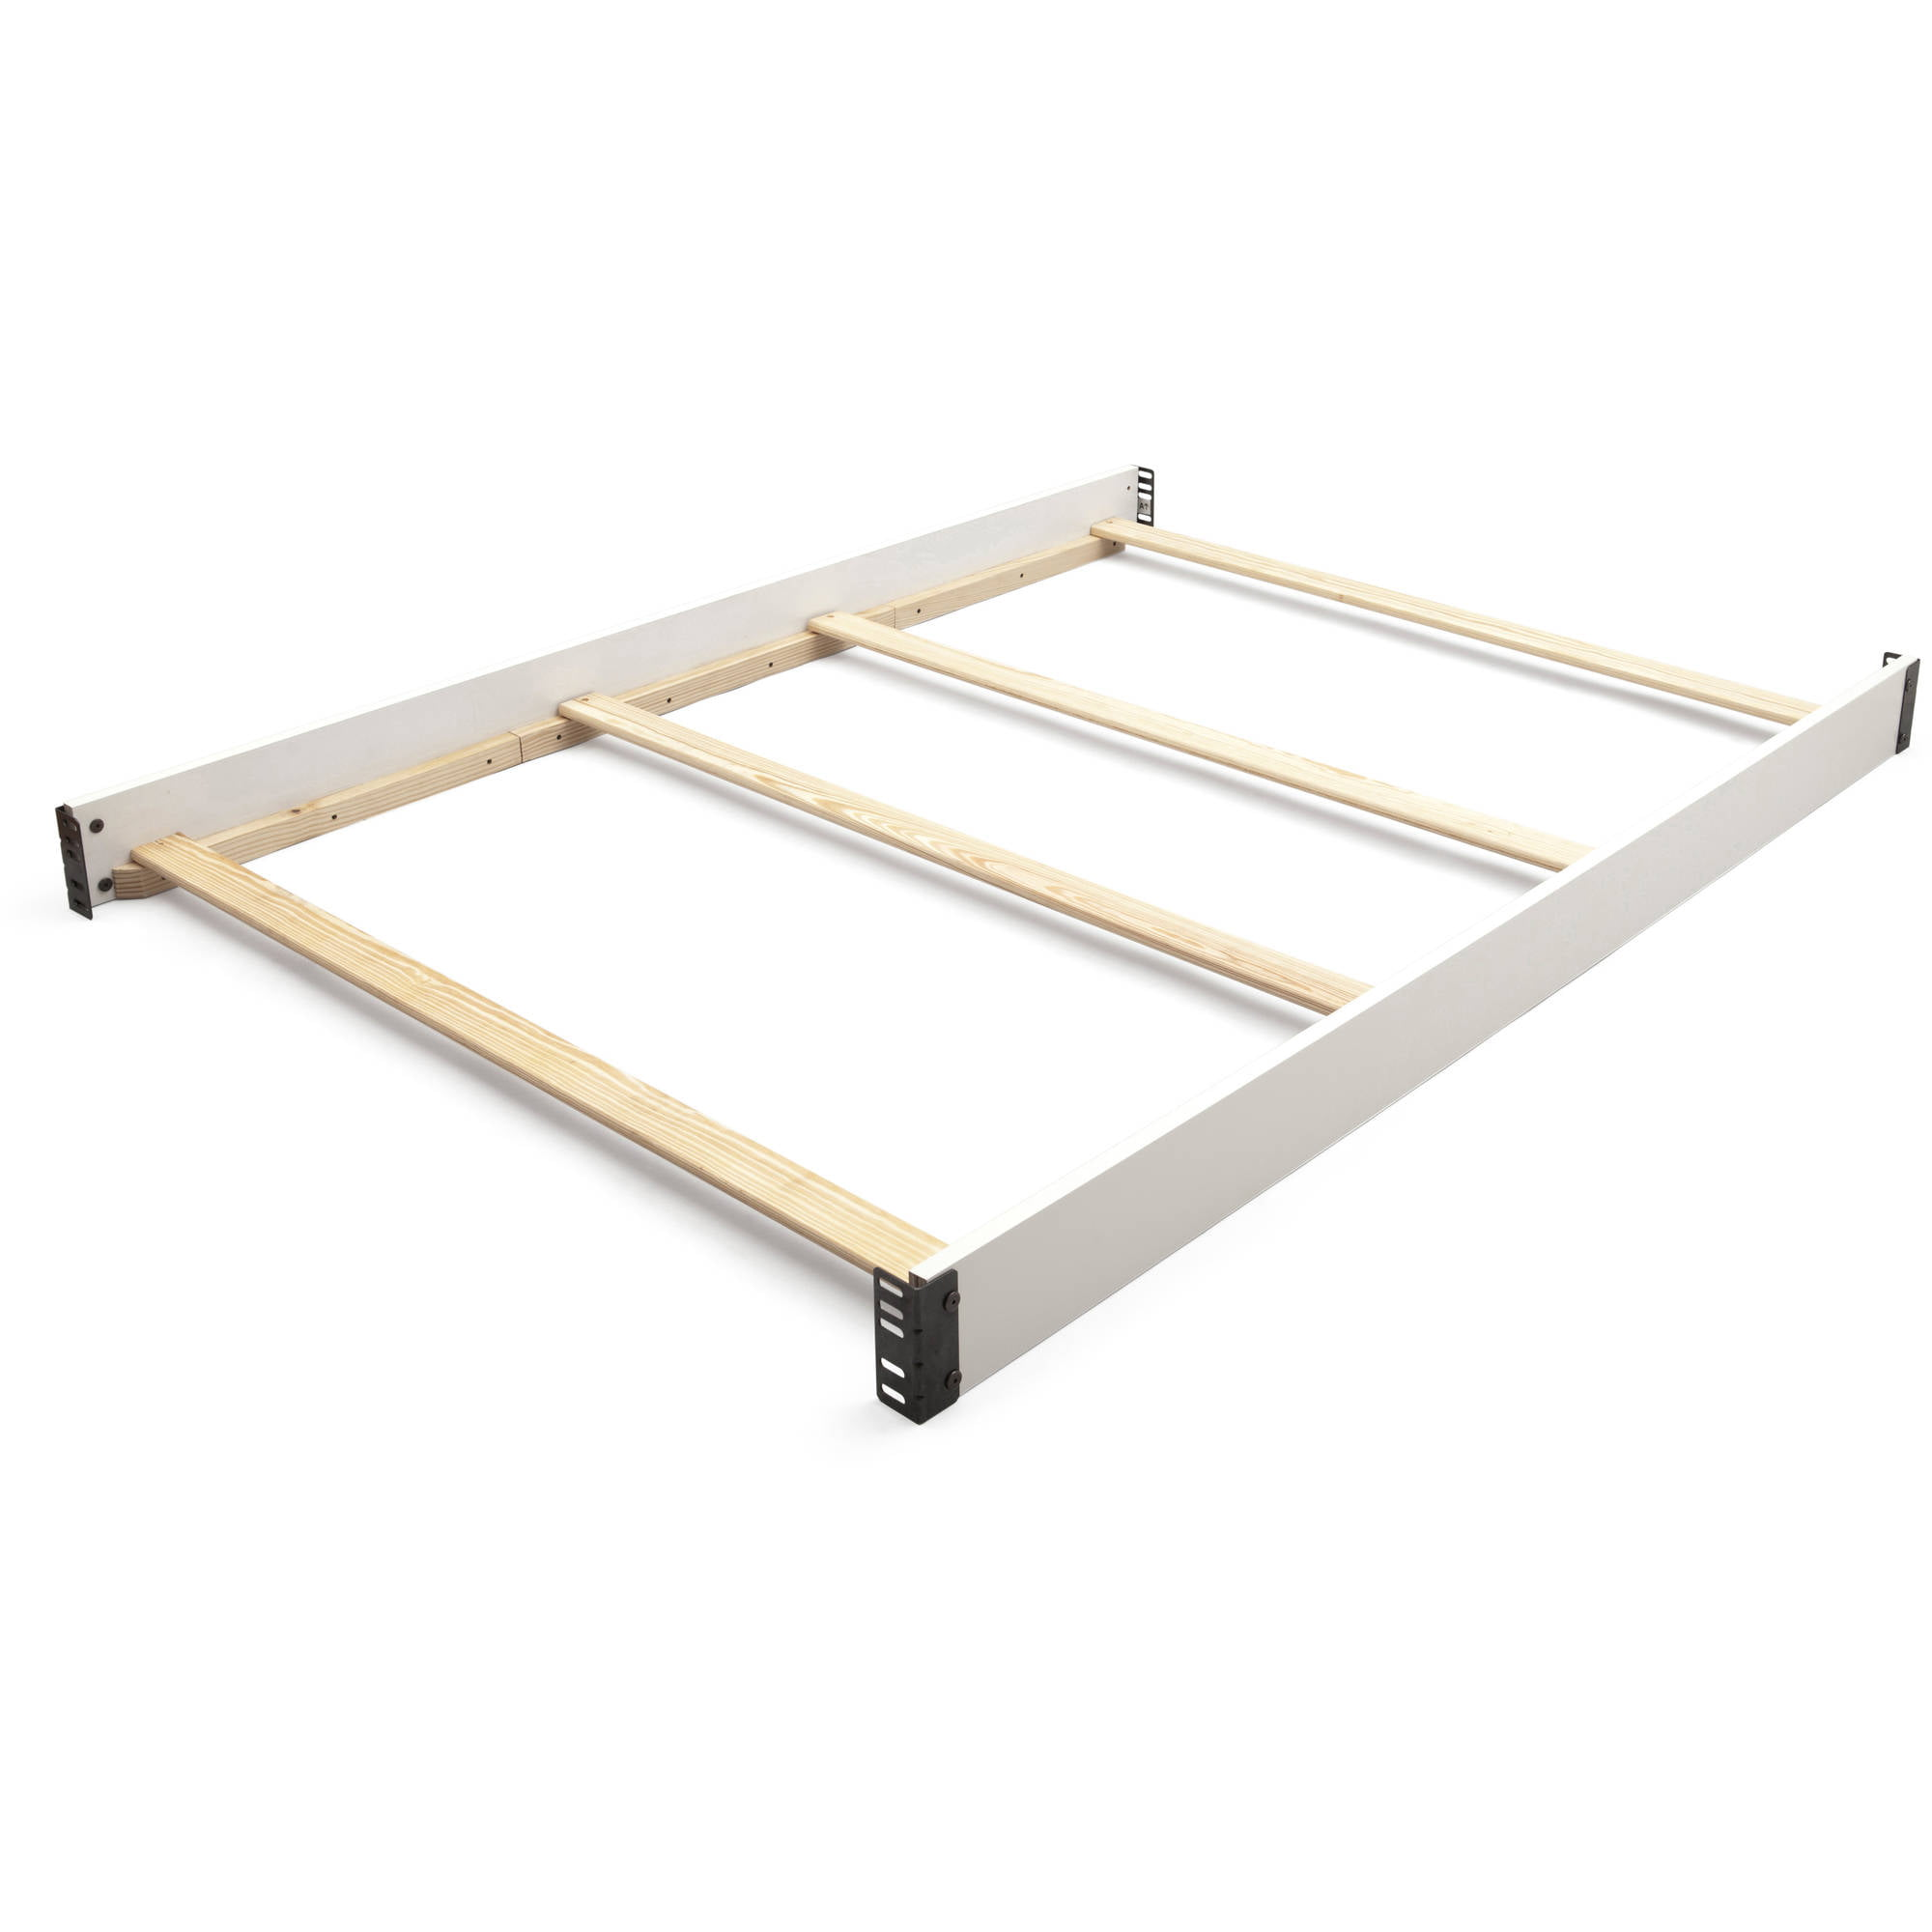 Delta Children Wooden Full Size Bed Rails 0050, White   Walmart.com